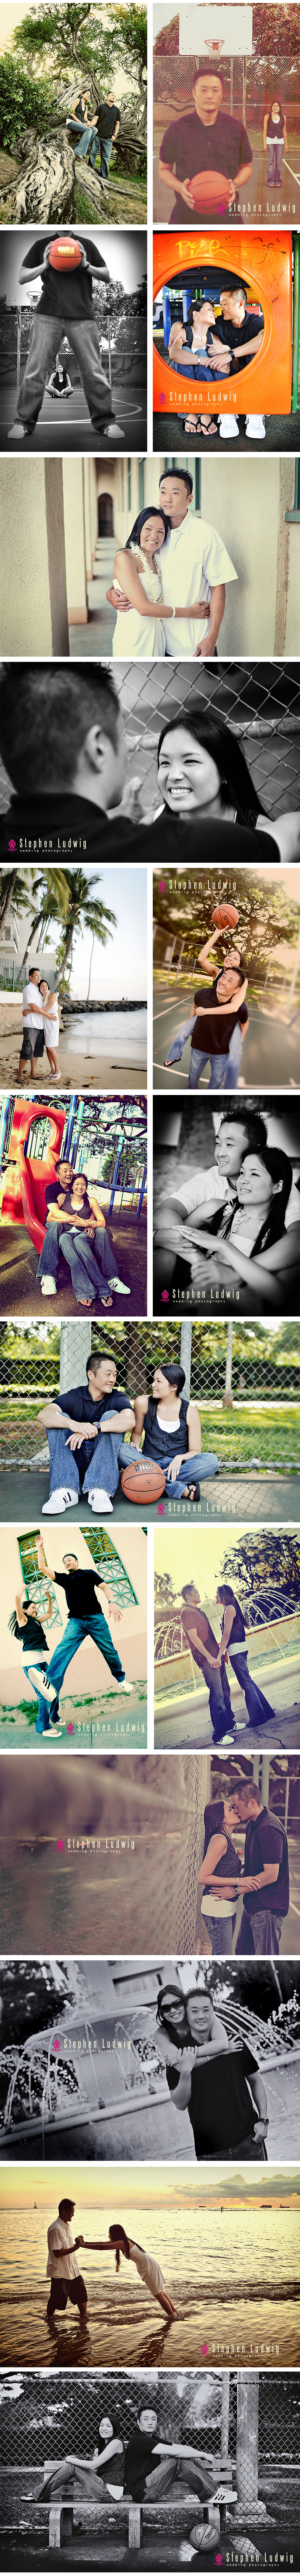 stephen-ludwig-photography-kristi-and-chris-engagement2